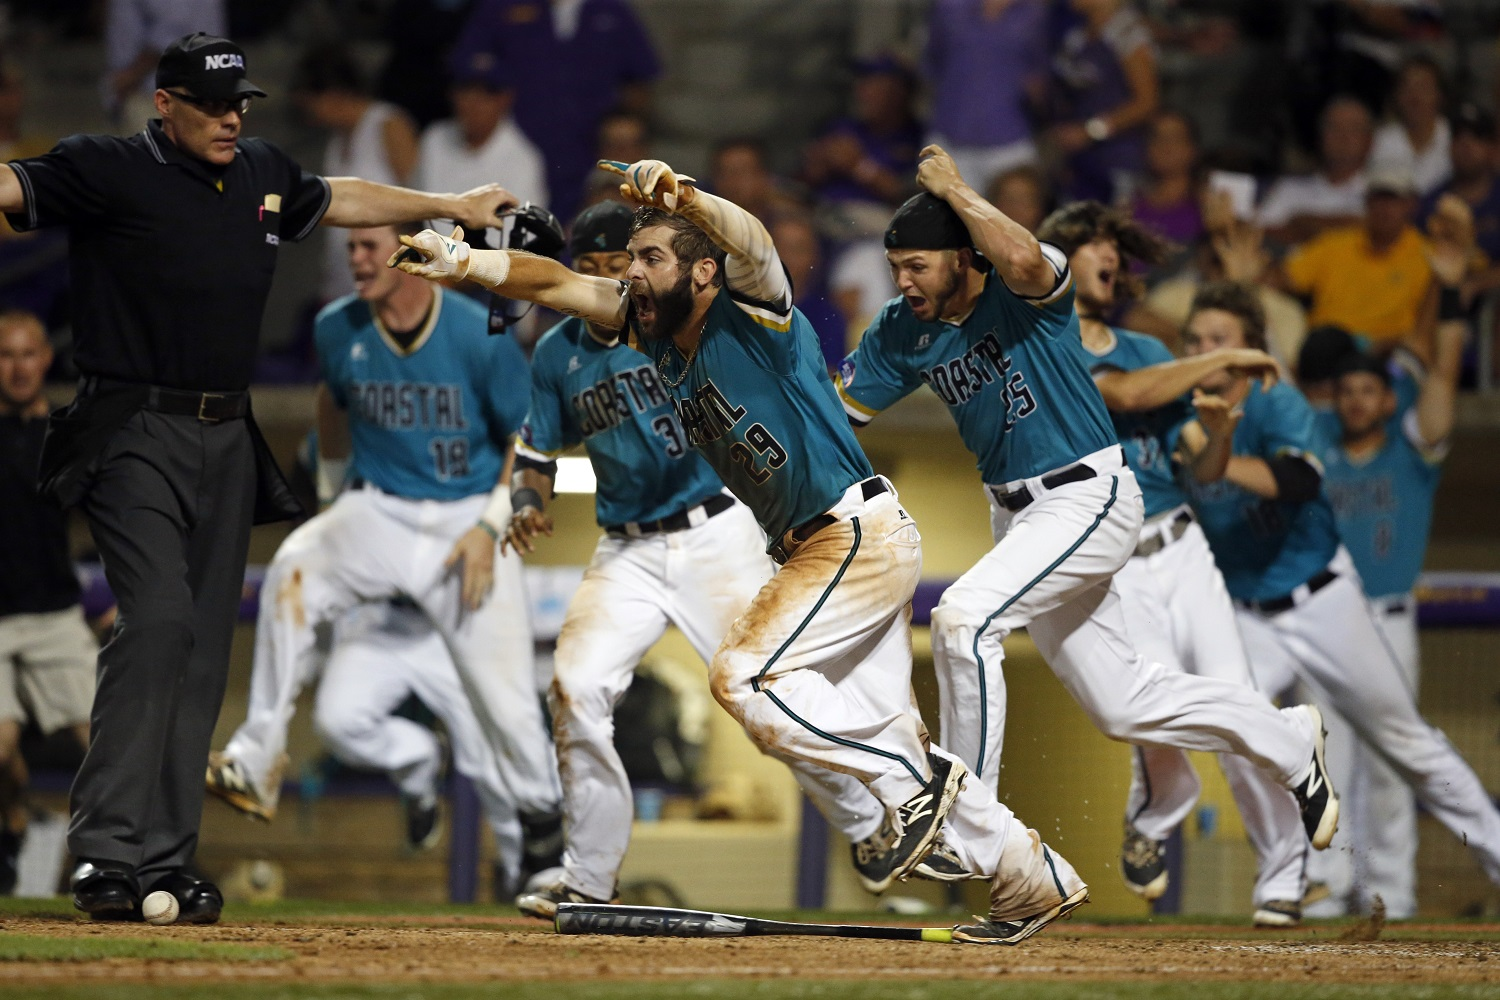 Coastal Carolina's Anthony Marks (29) reacts after sliding into home plate to score the winning run in the bottom of the ninth inning of an NCAA college baseball tournament super regional game against LSU in Baton Rouge, La., Sunday, June 12, 2016. Coastal Carolina won 4-3 to advance to the College World Series. (AP Photo/Gerald Herbert)